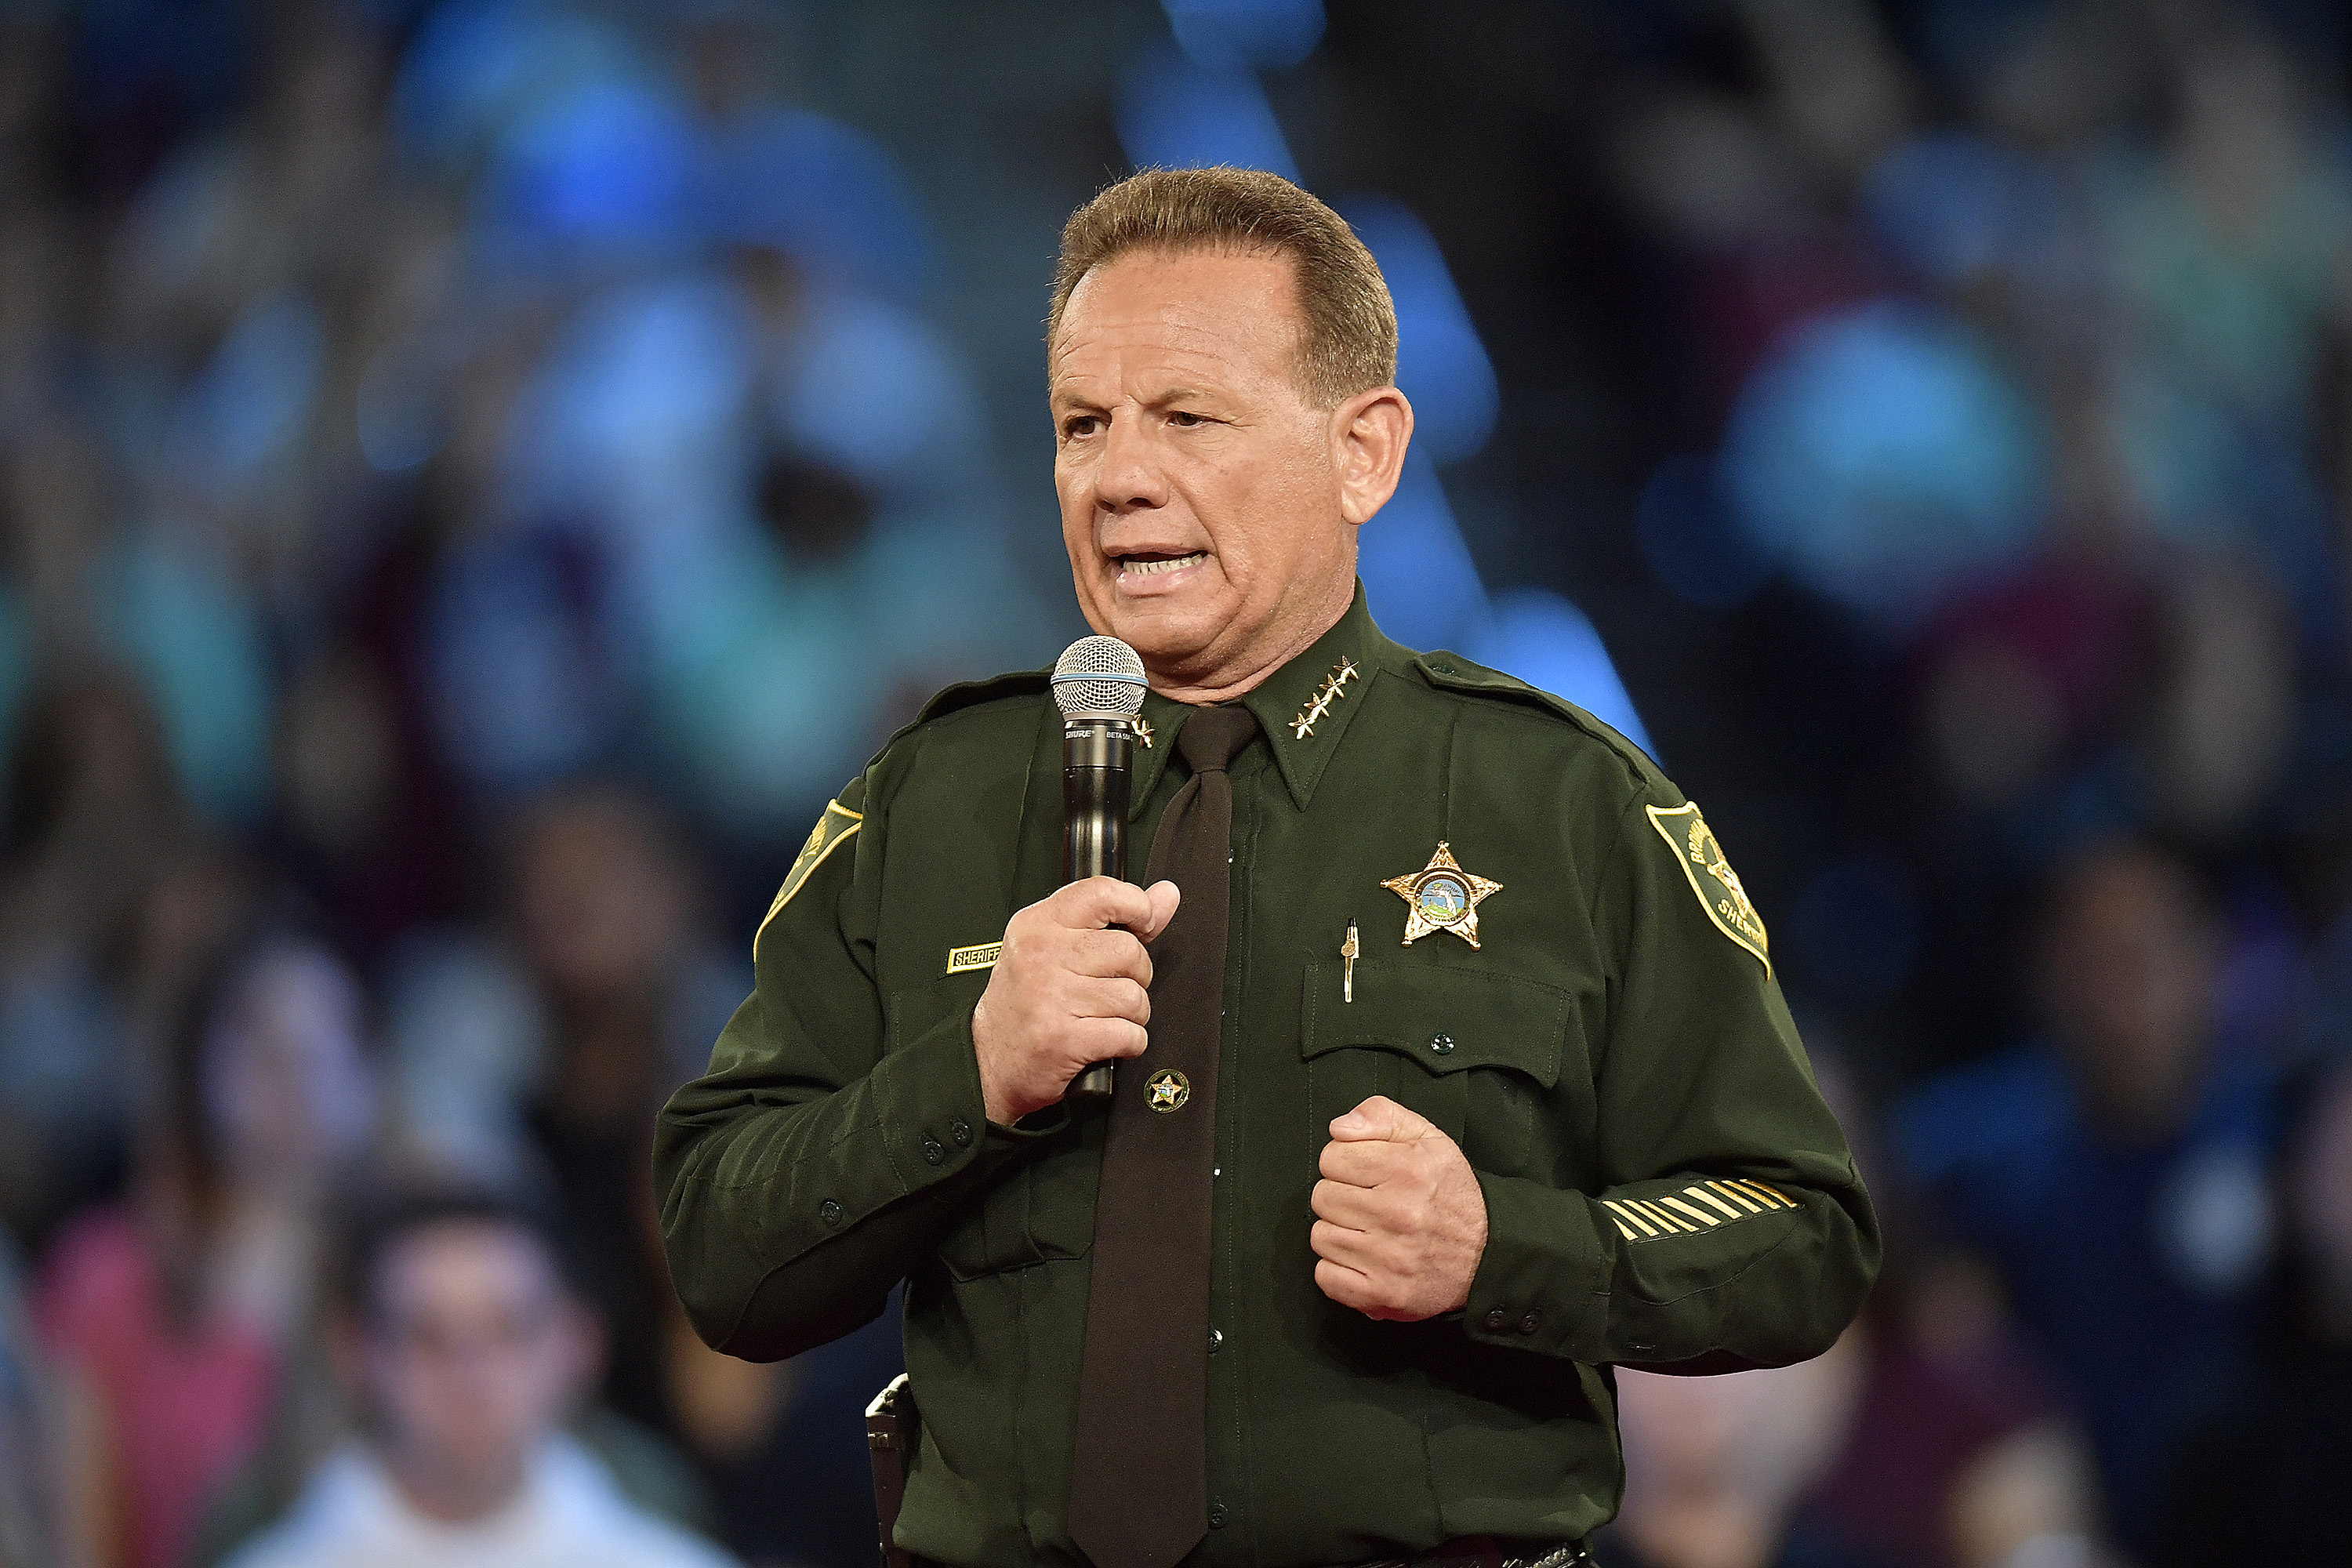 Broward County Sheriff Scott Israel speaks before the start of a CNN town hall meeting on Wednesday, Feb. 21, 2018, at the BB&T Center, in Sunrise, Fla.